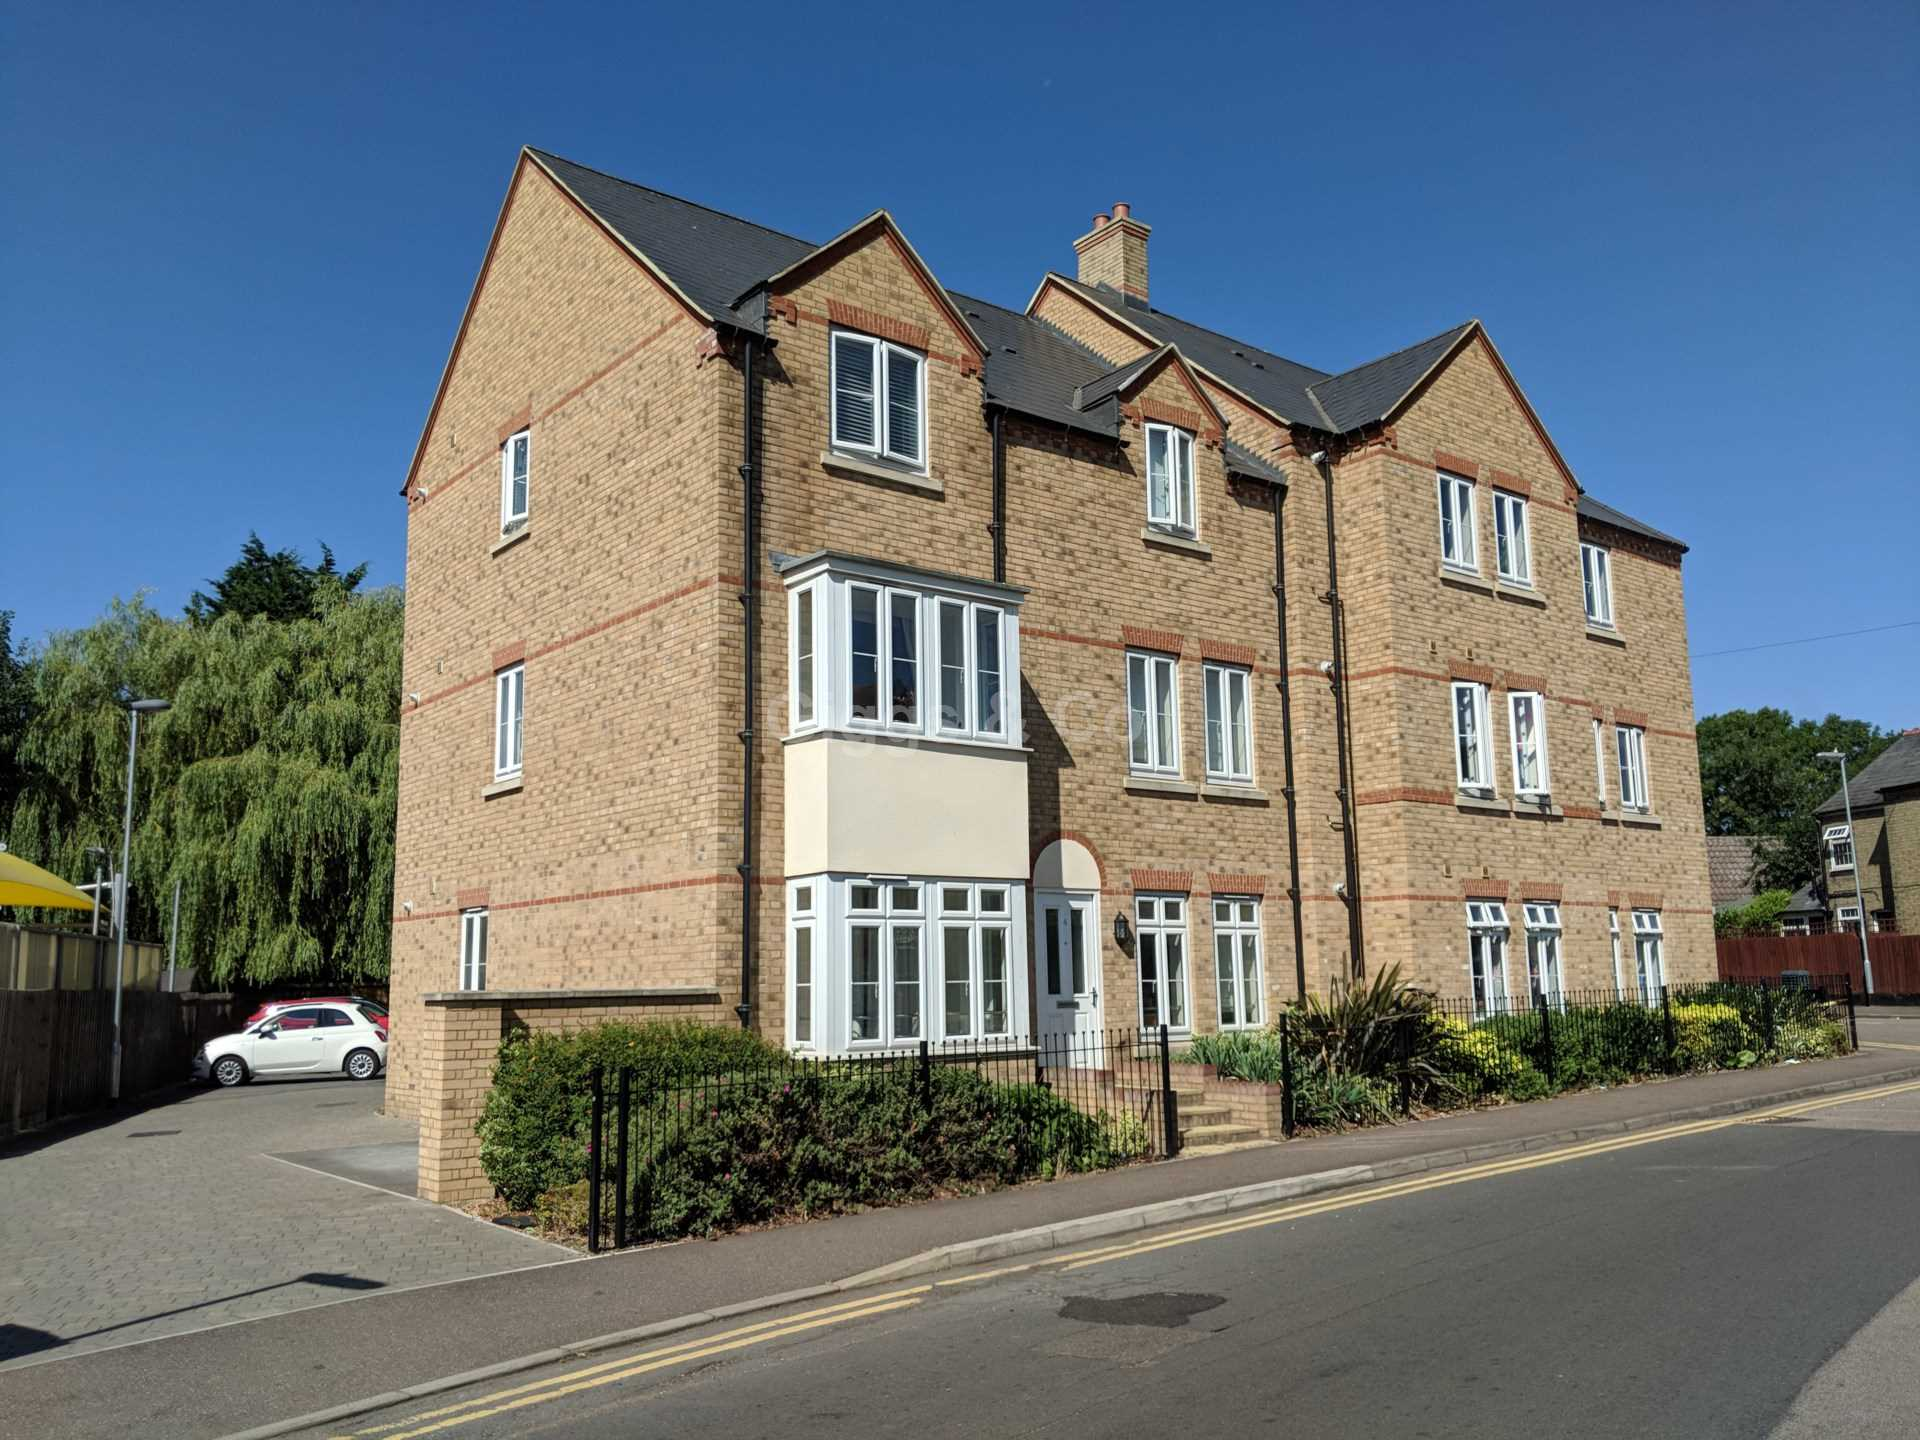 2 bed apartment to rent in Kings Lane, St. Neots, PE19